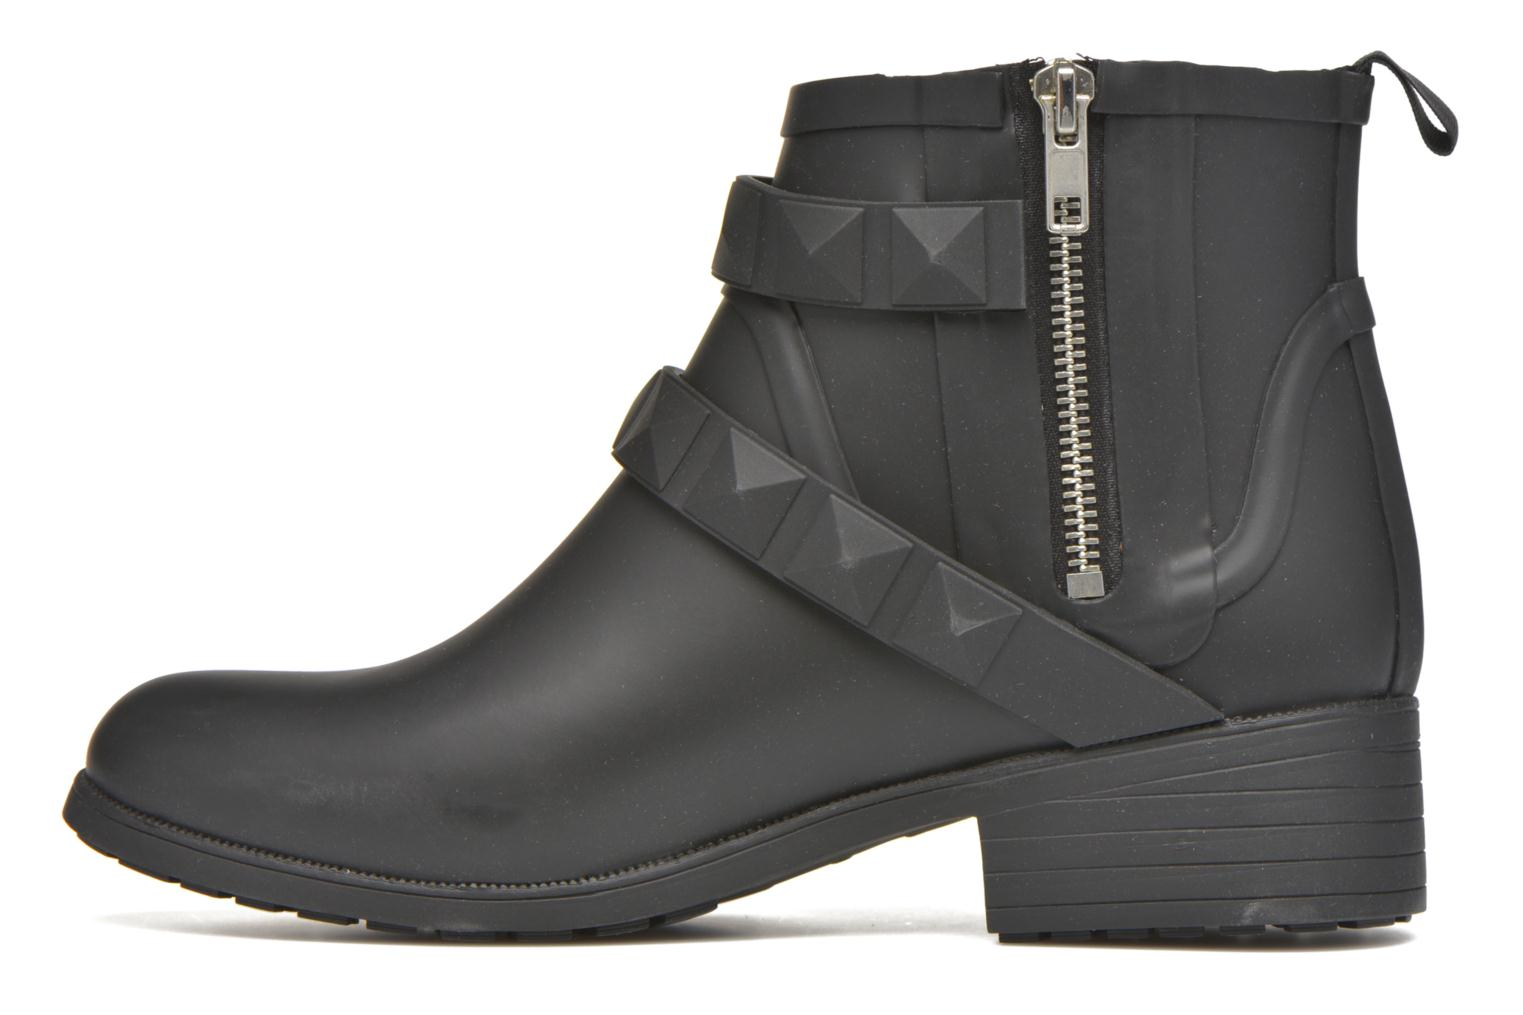 Bottines et boots Rebecca Minkoff QUINCY Noir vue face